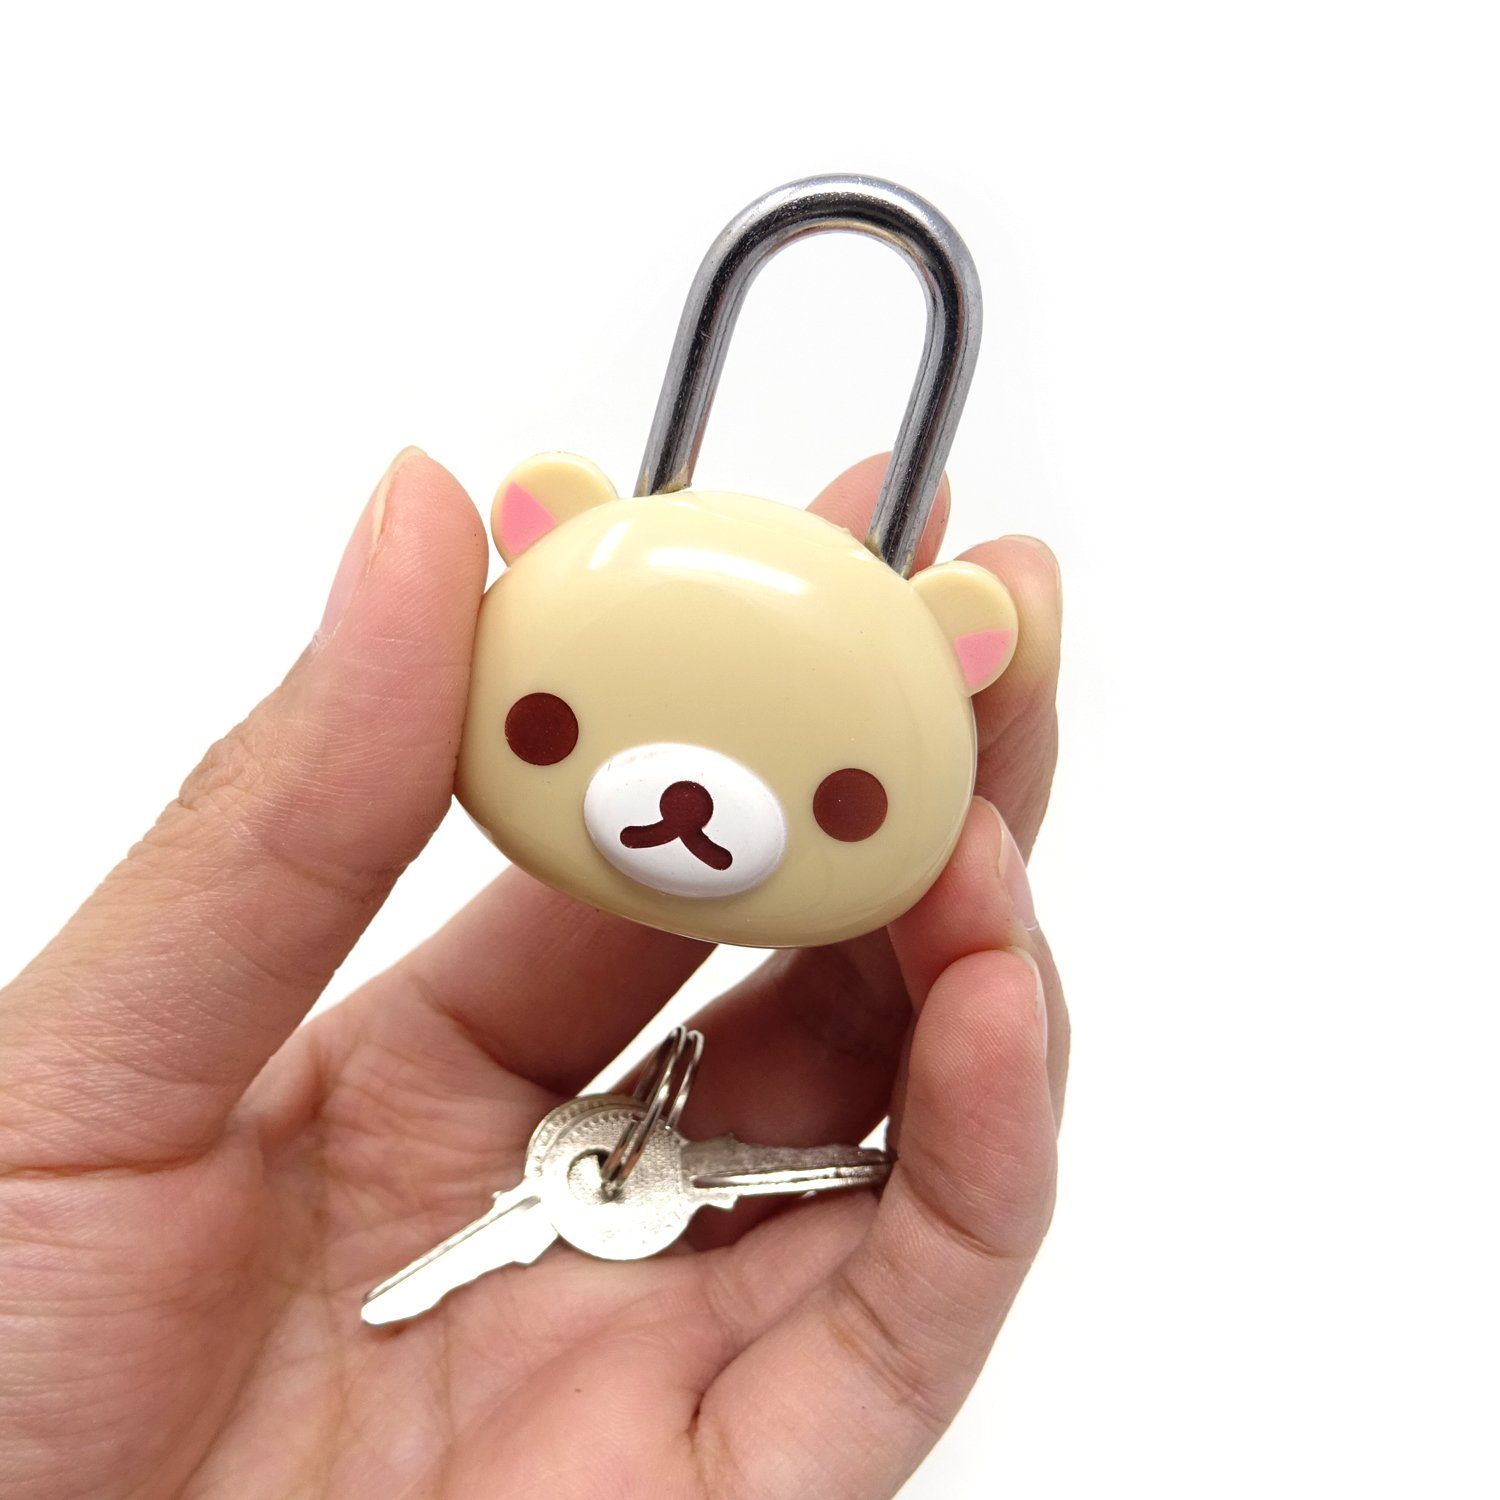 Backpacks and Lockers Honbay Cute Beige Bear Lock Padlock with Keys for Suitcases